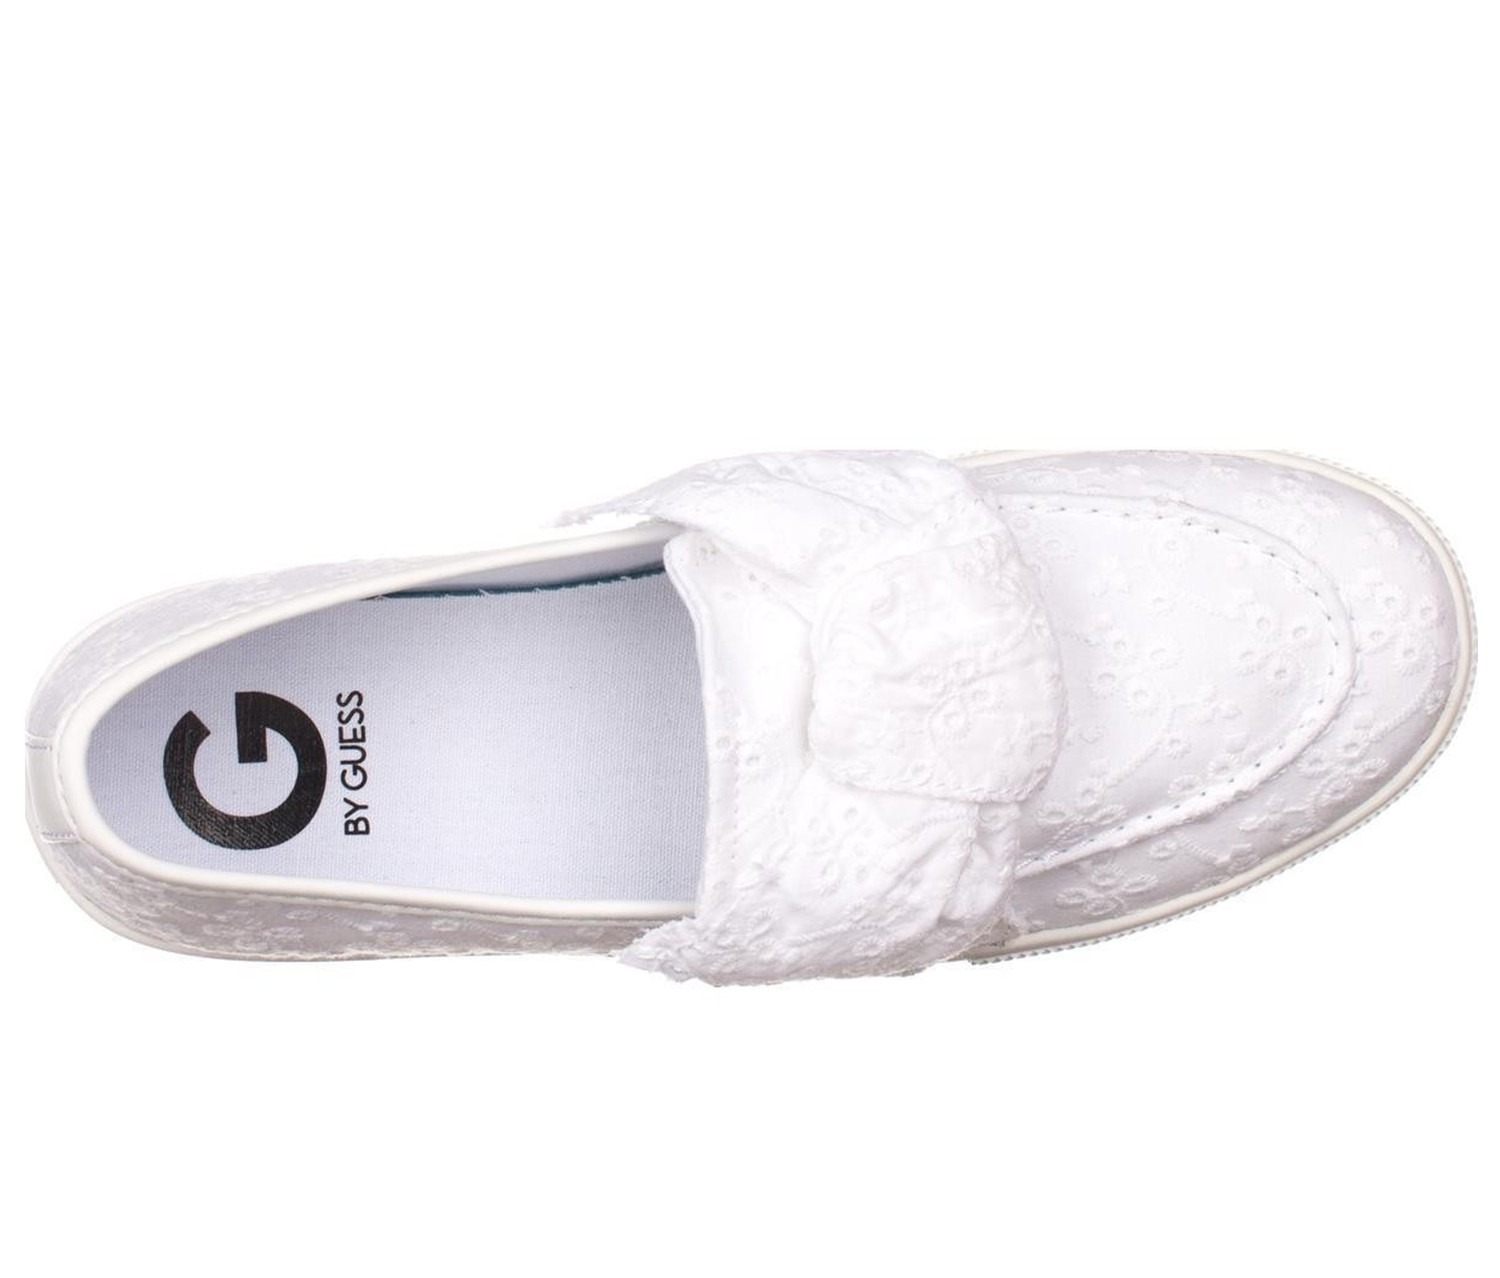 55ebc196ccd41 Shop Guess Guess Chippy Slip-on Fashion Sneakers, White for Women ...